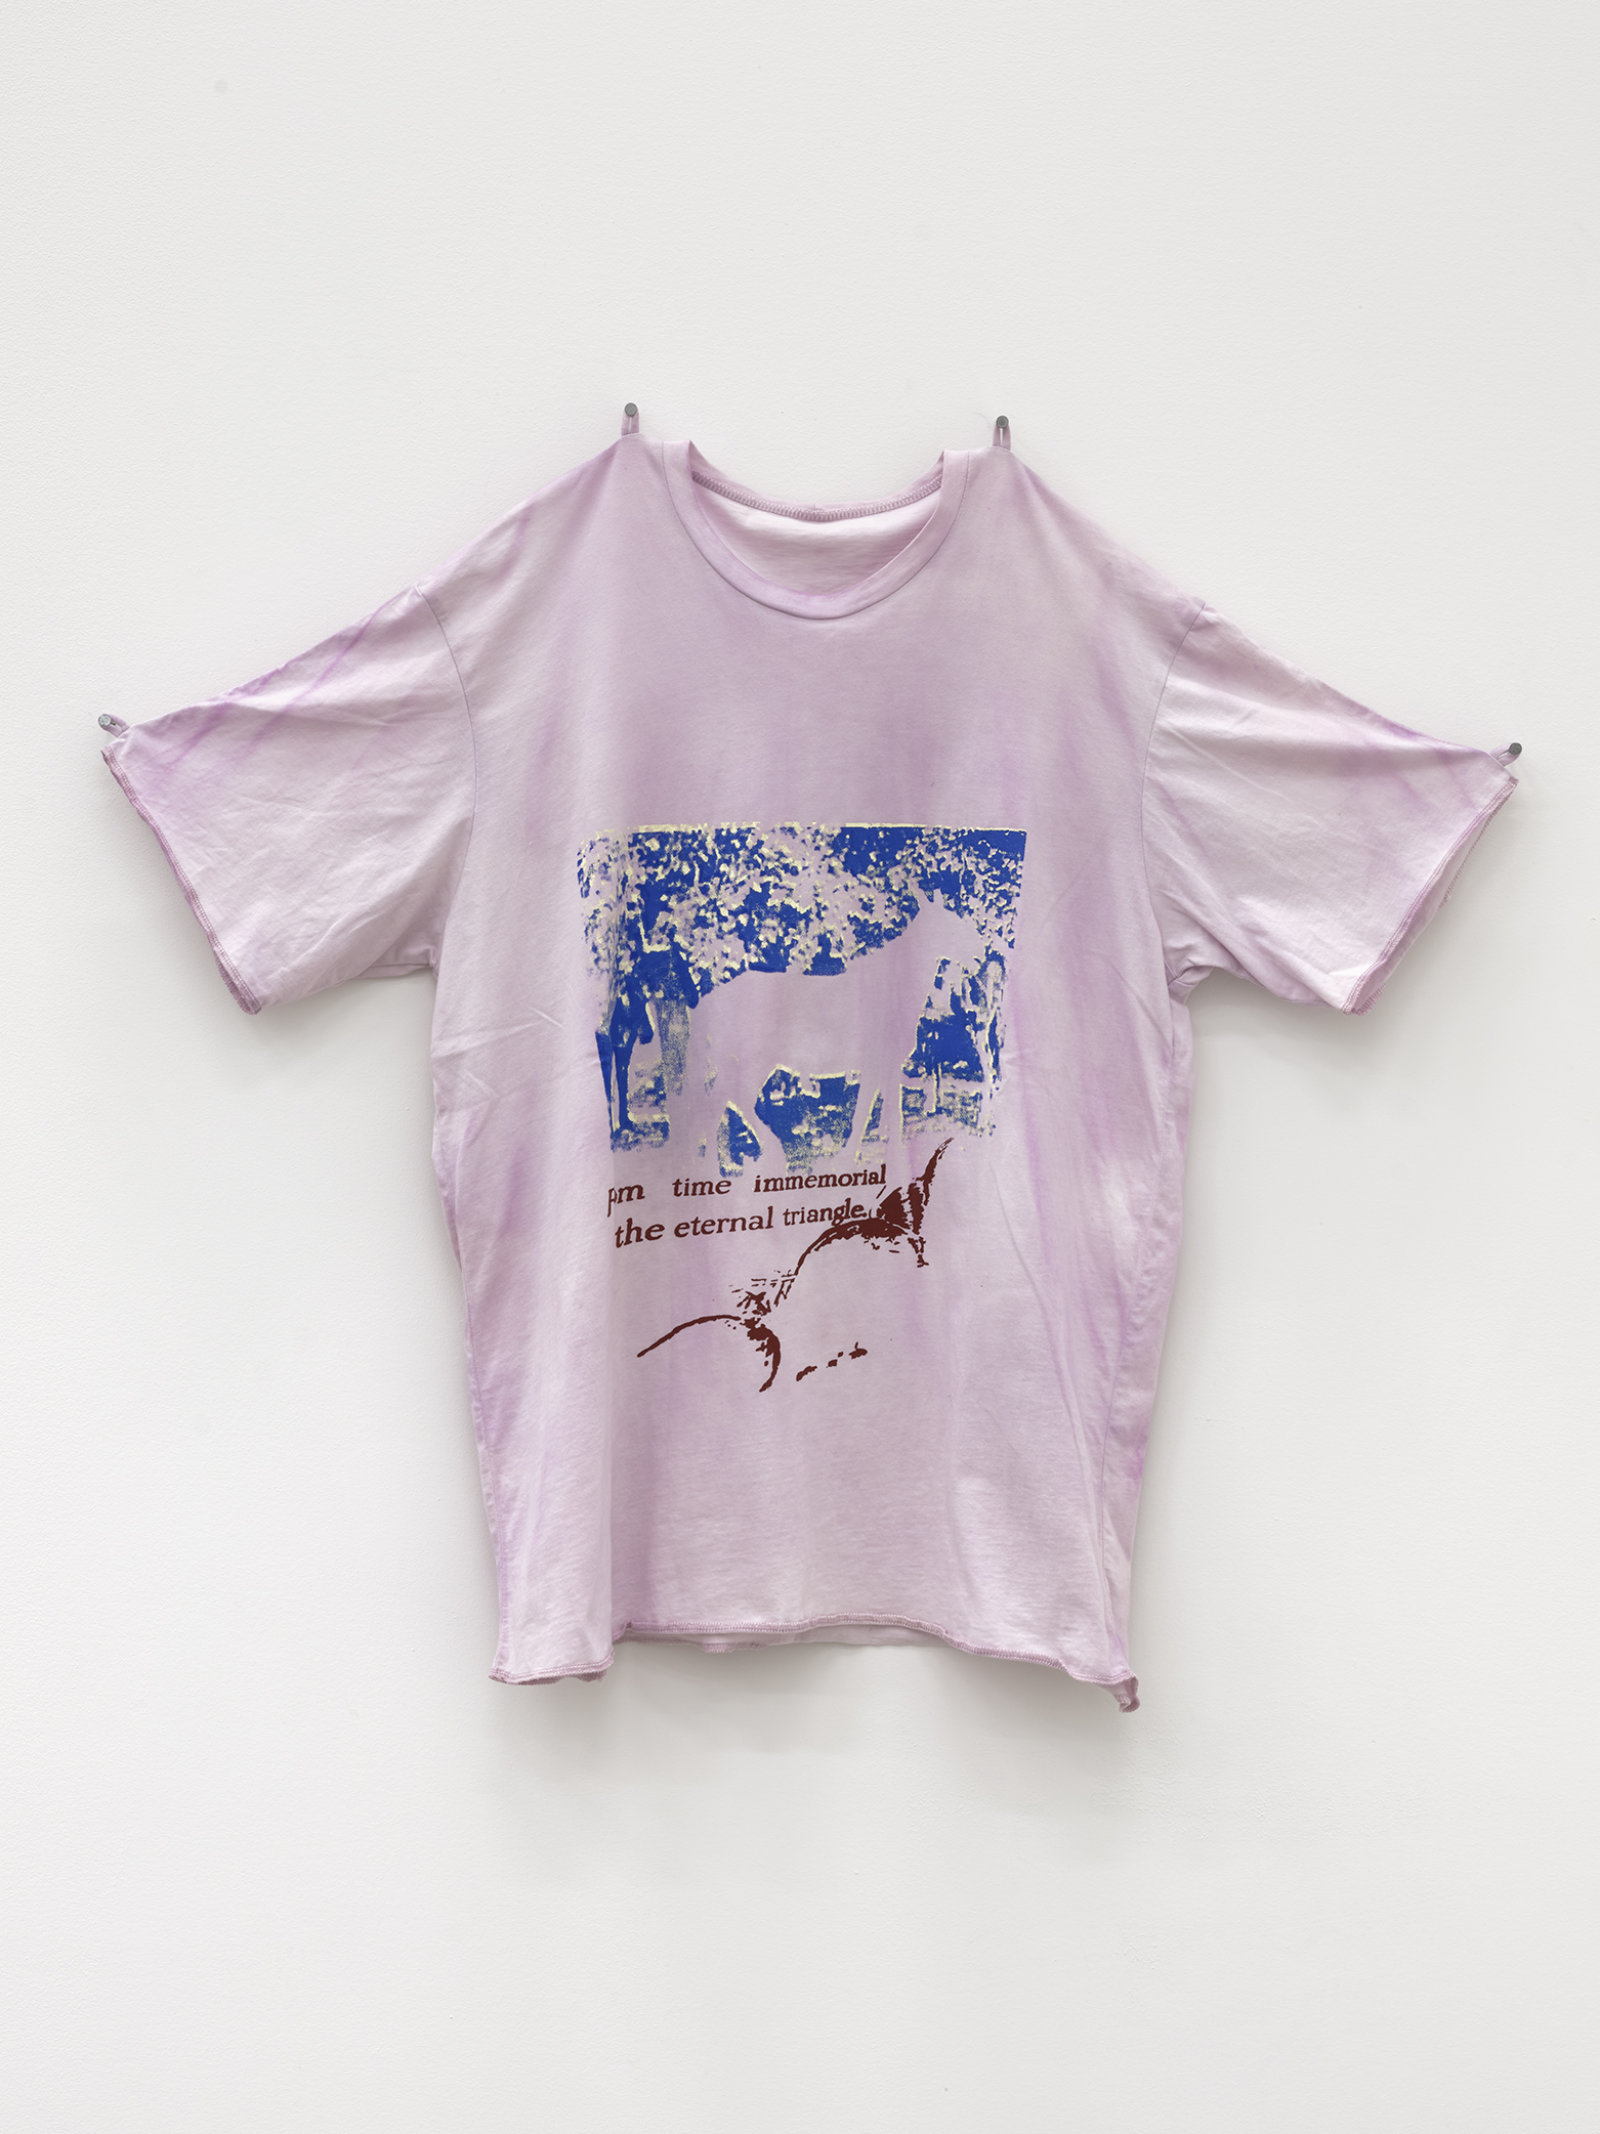 Duane Linklater, horses with intertitle, 2020, handmade t-shirt, cochineal dye, silkscreen, nails, 33 x 37 x 6 in. (84 x 94 x 14 cm)